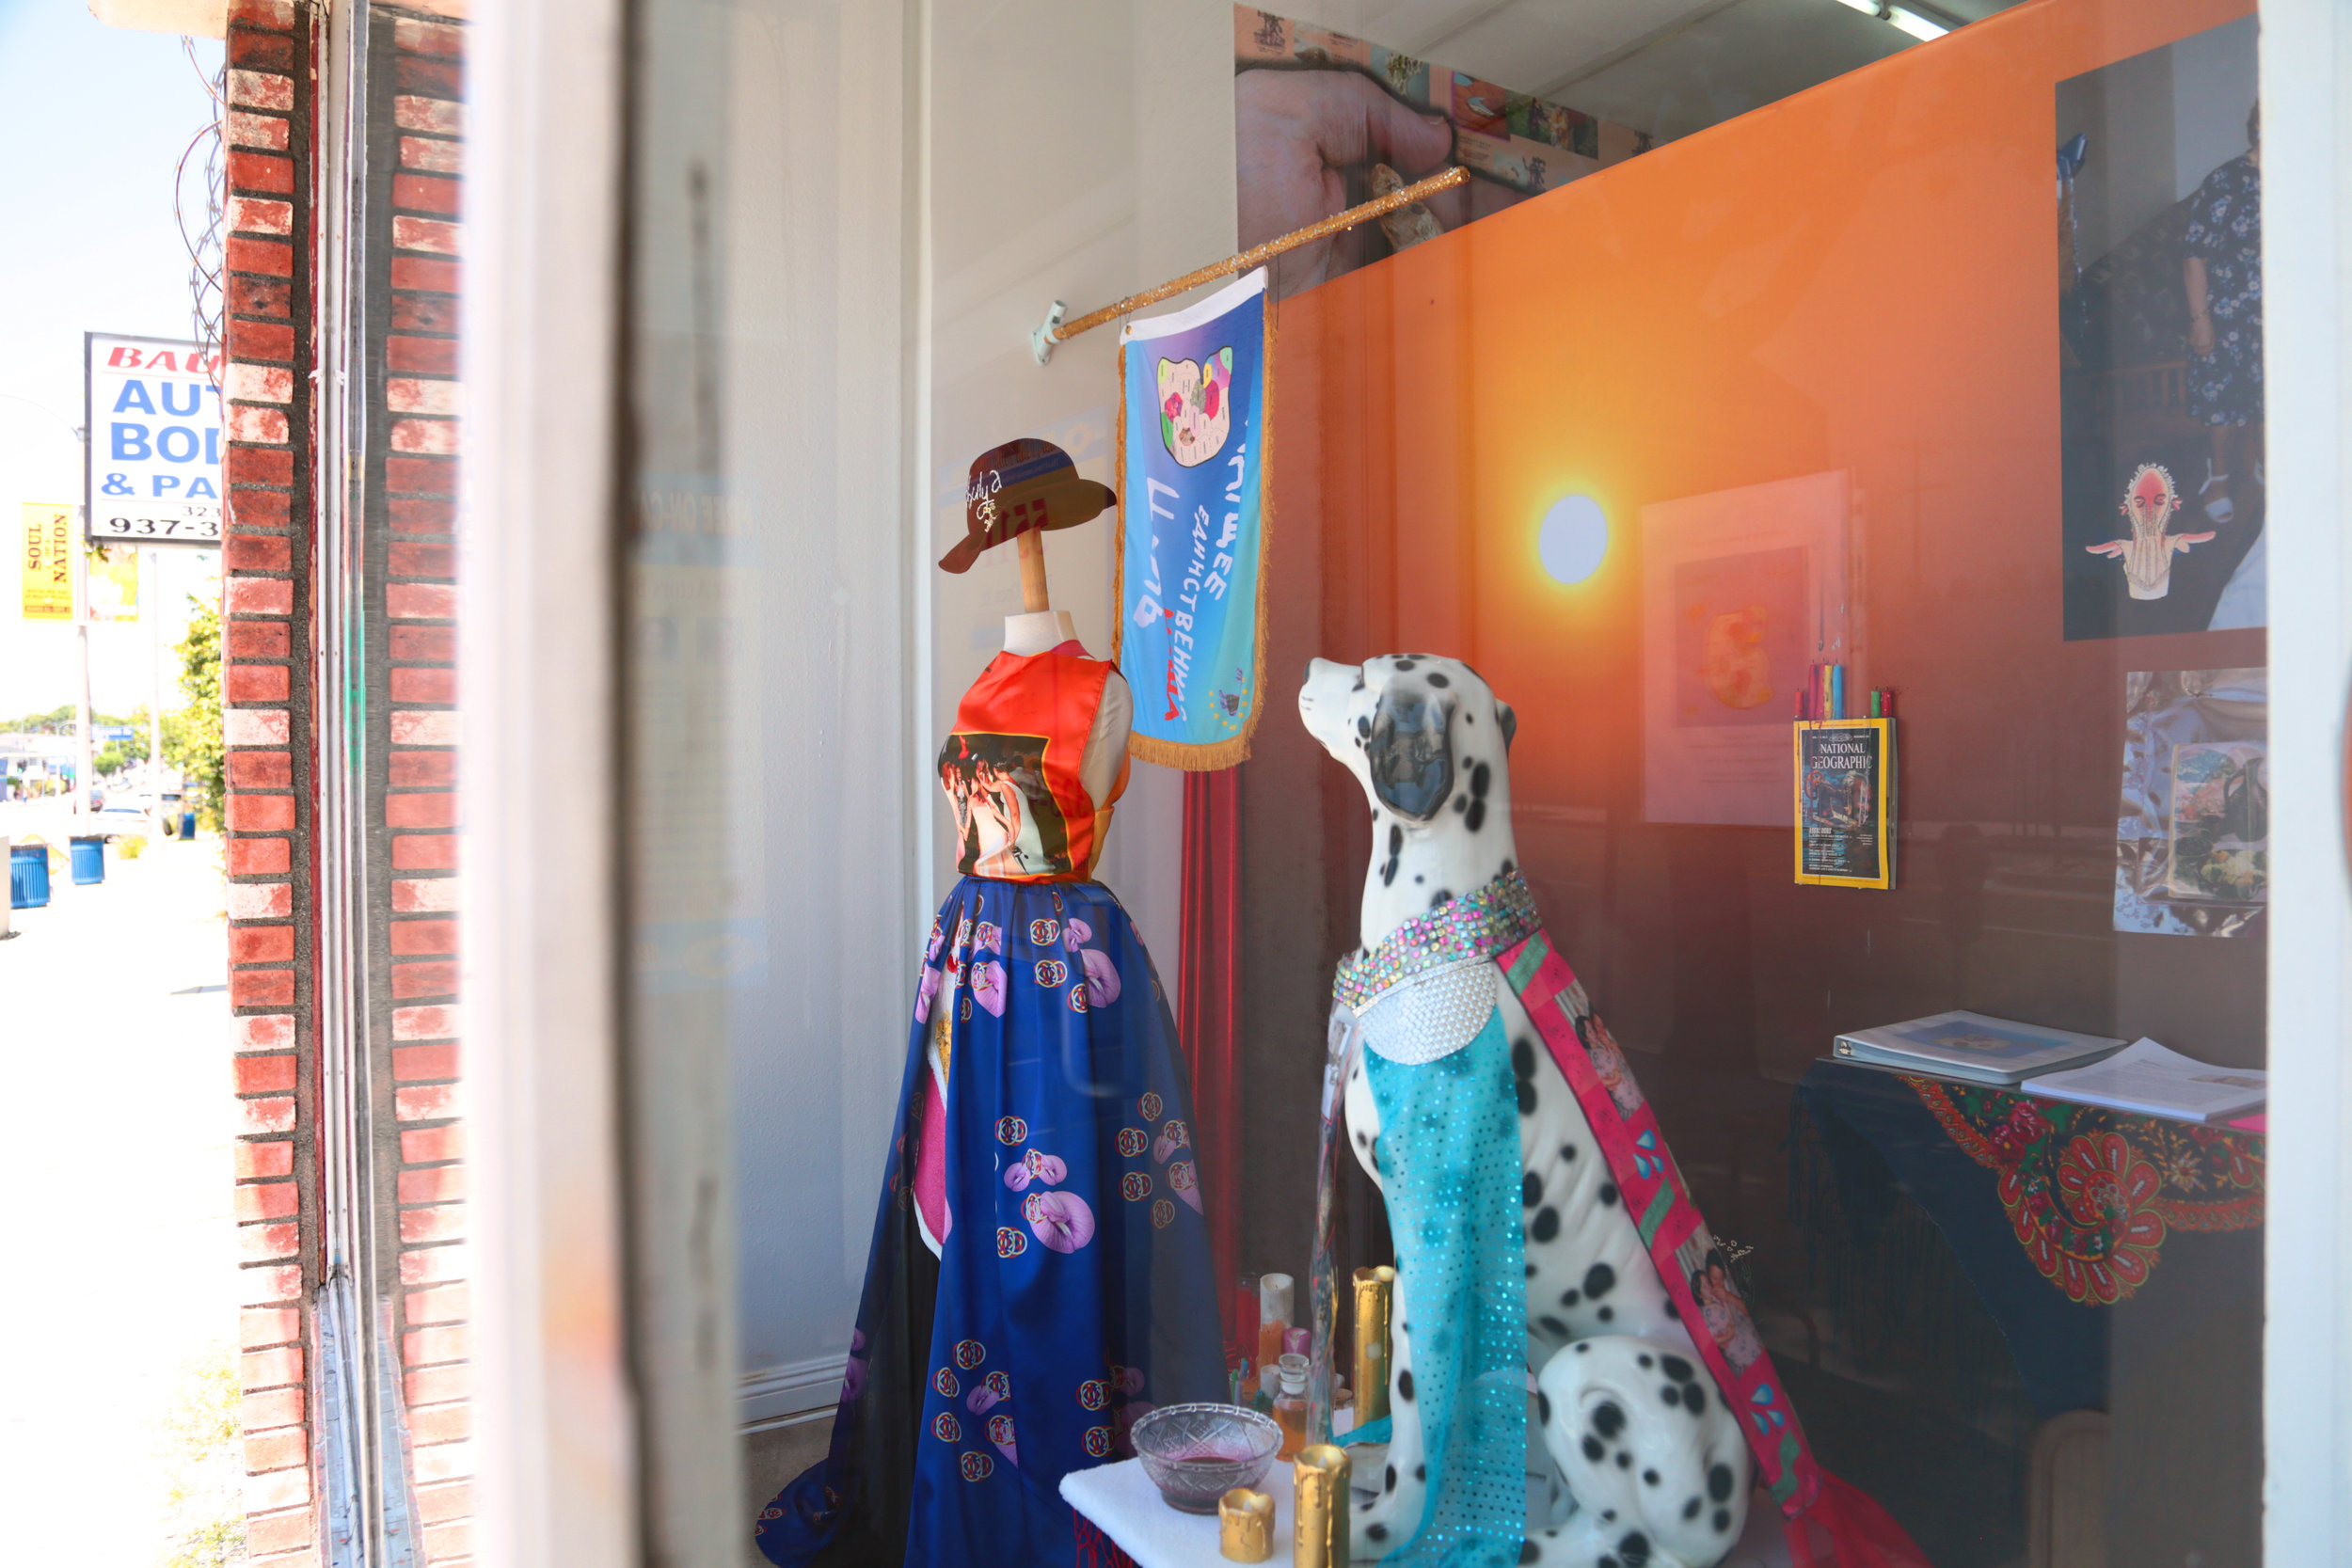 Installation view of  Molly Surazhsky   Mashacare Home of the Freaks, Misfits, & Weirdoes   July 14 - August 18, 2019   Link to press release.